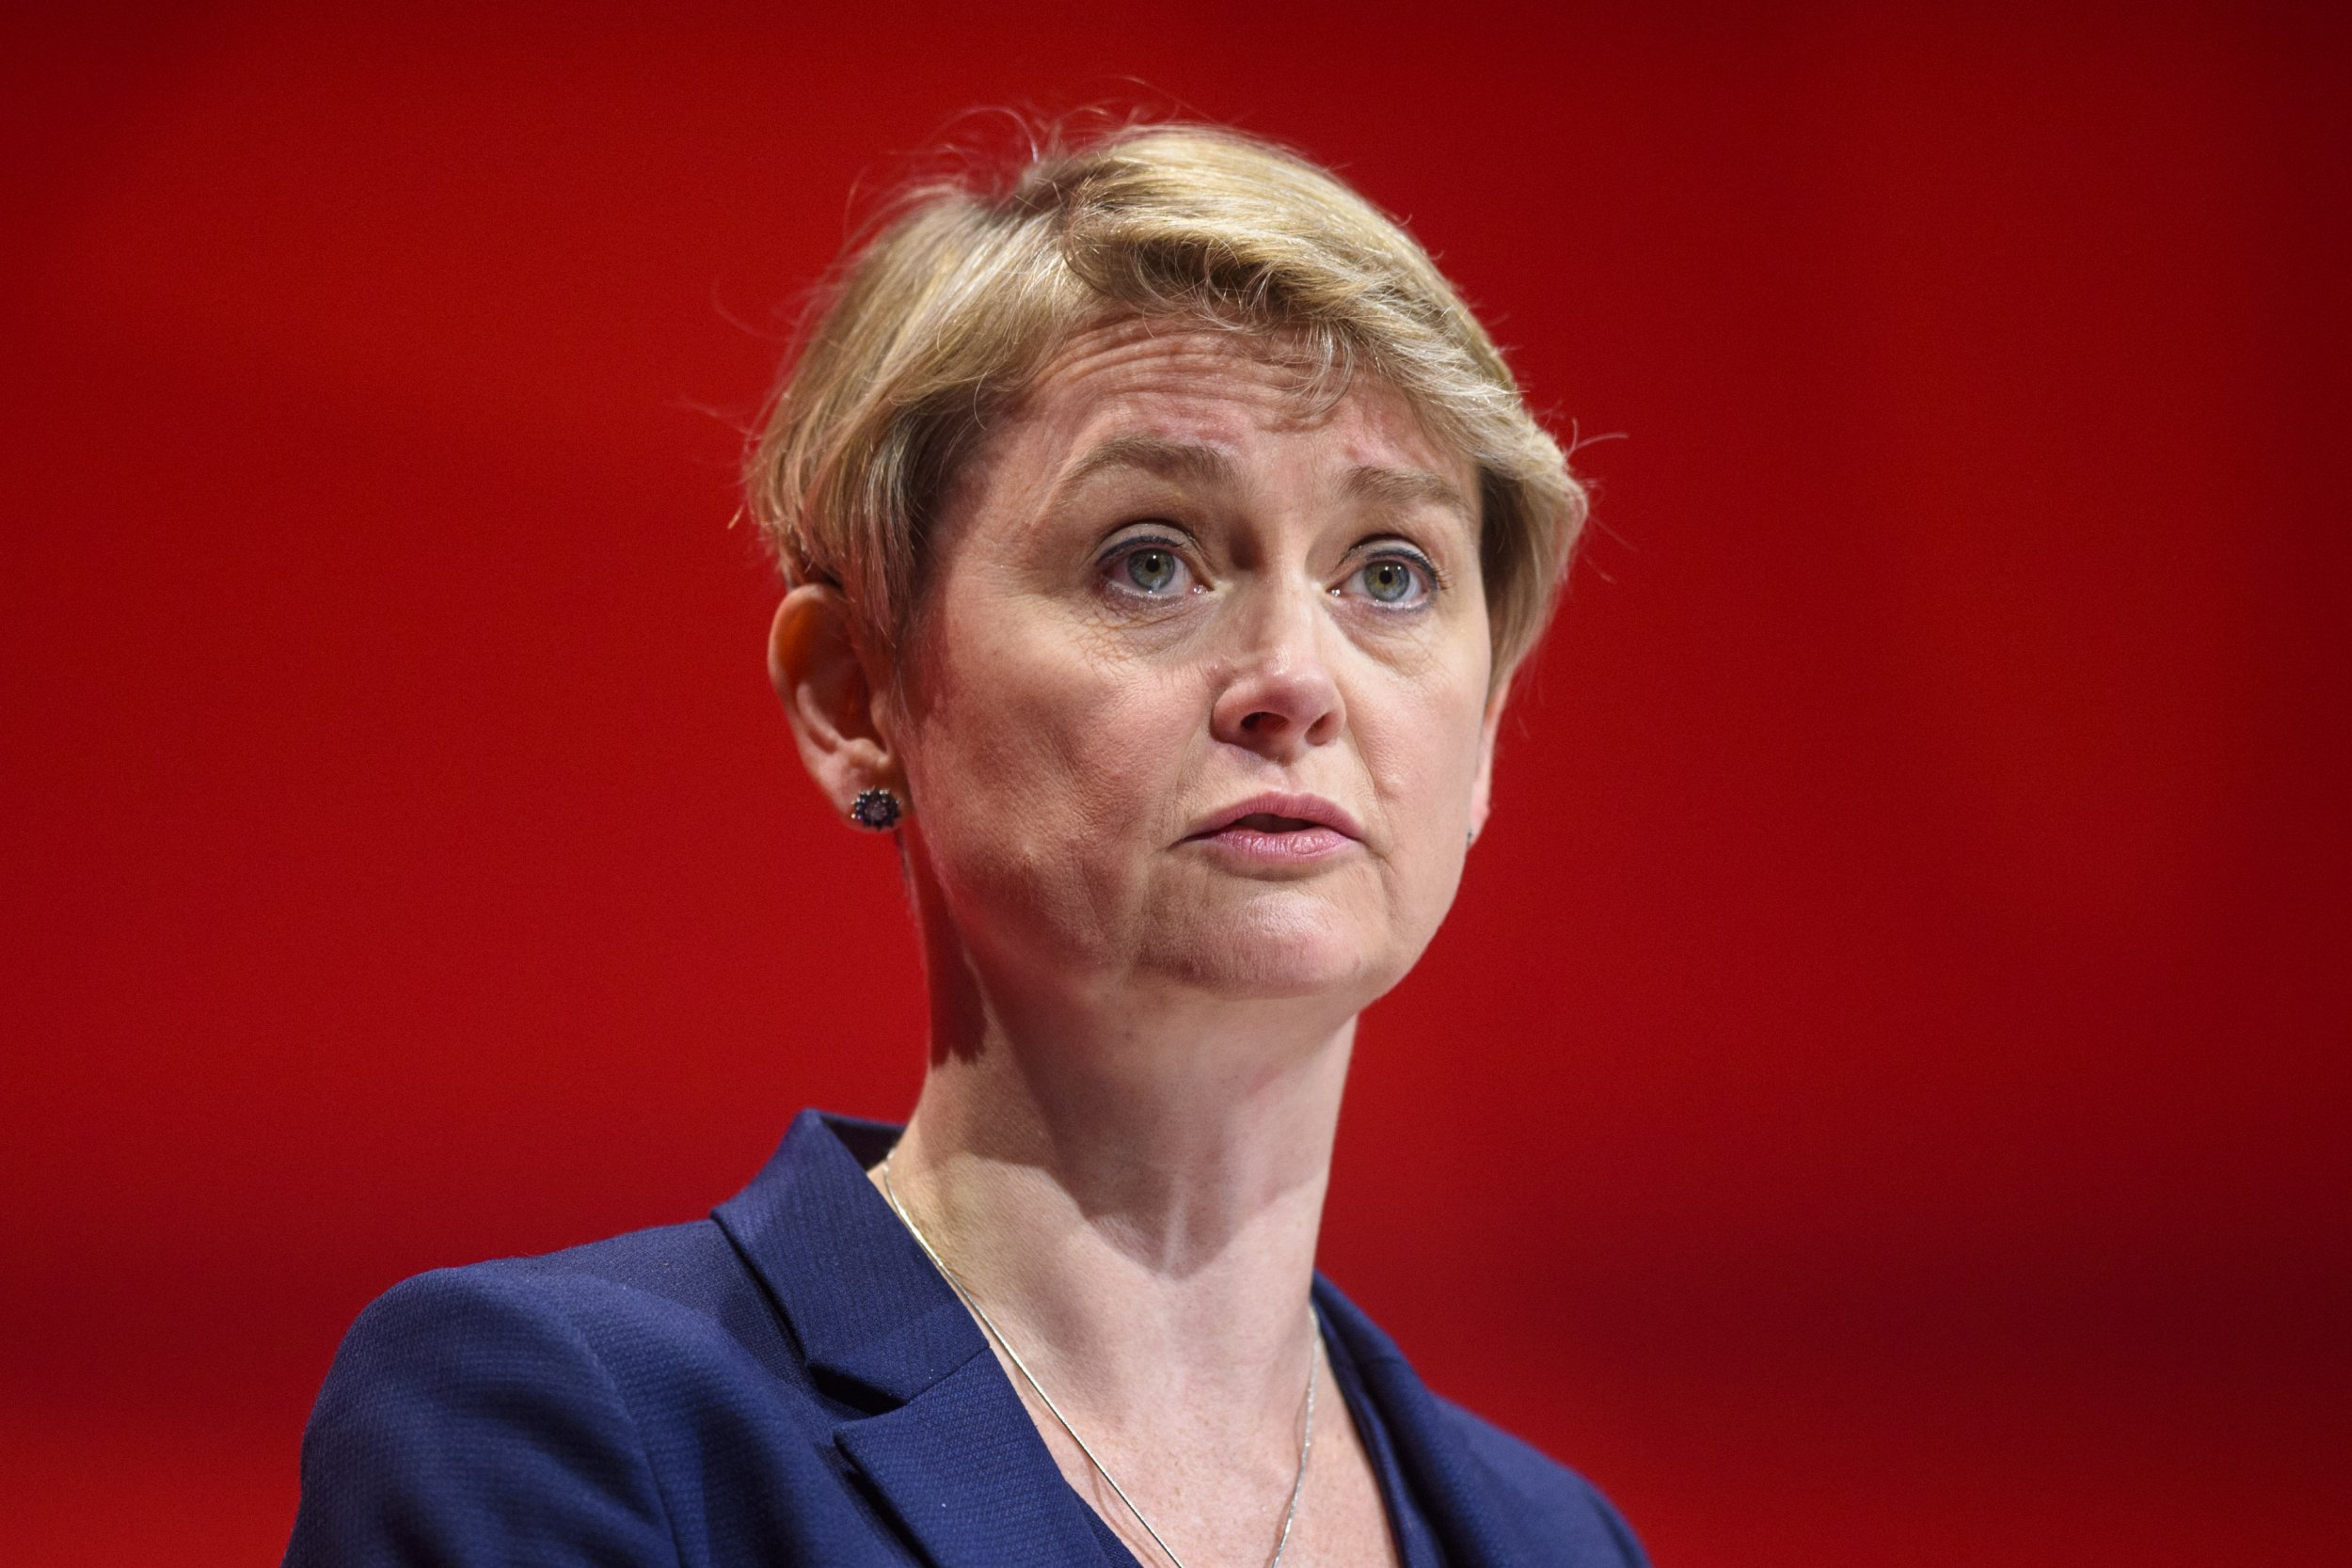 Yvette Cooper MP speaks during the fourth day of the Labour Party conference in Liverpool. Picture date: Wednesday September 28, 2016. Photo credit should read: Matt Crossick/ EMPICS Entertainment.